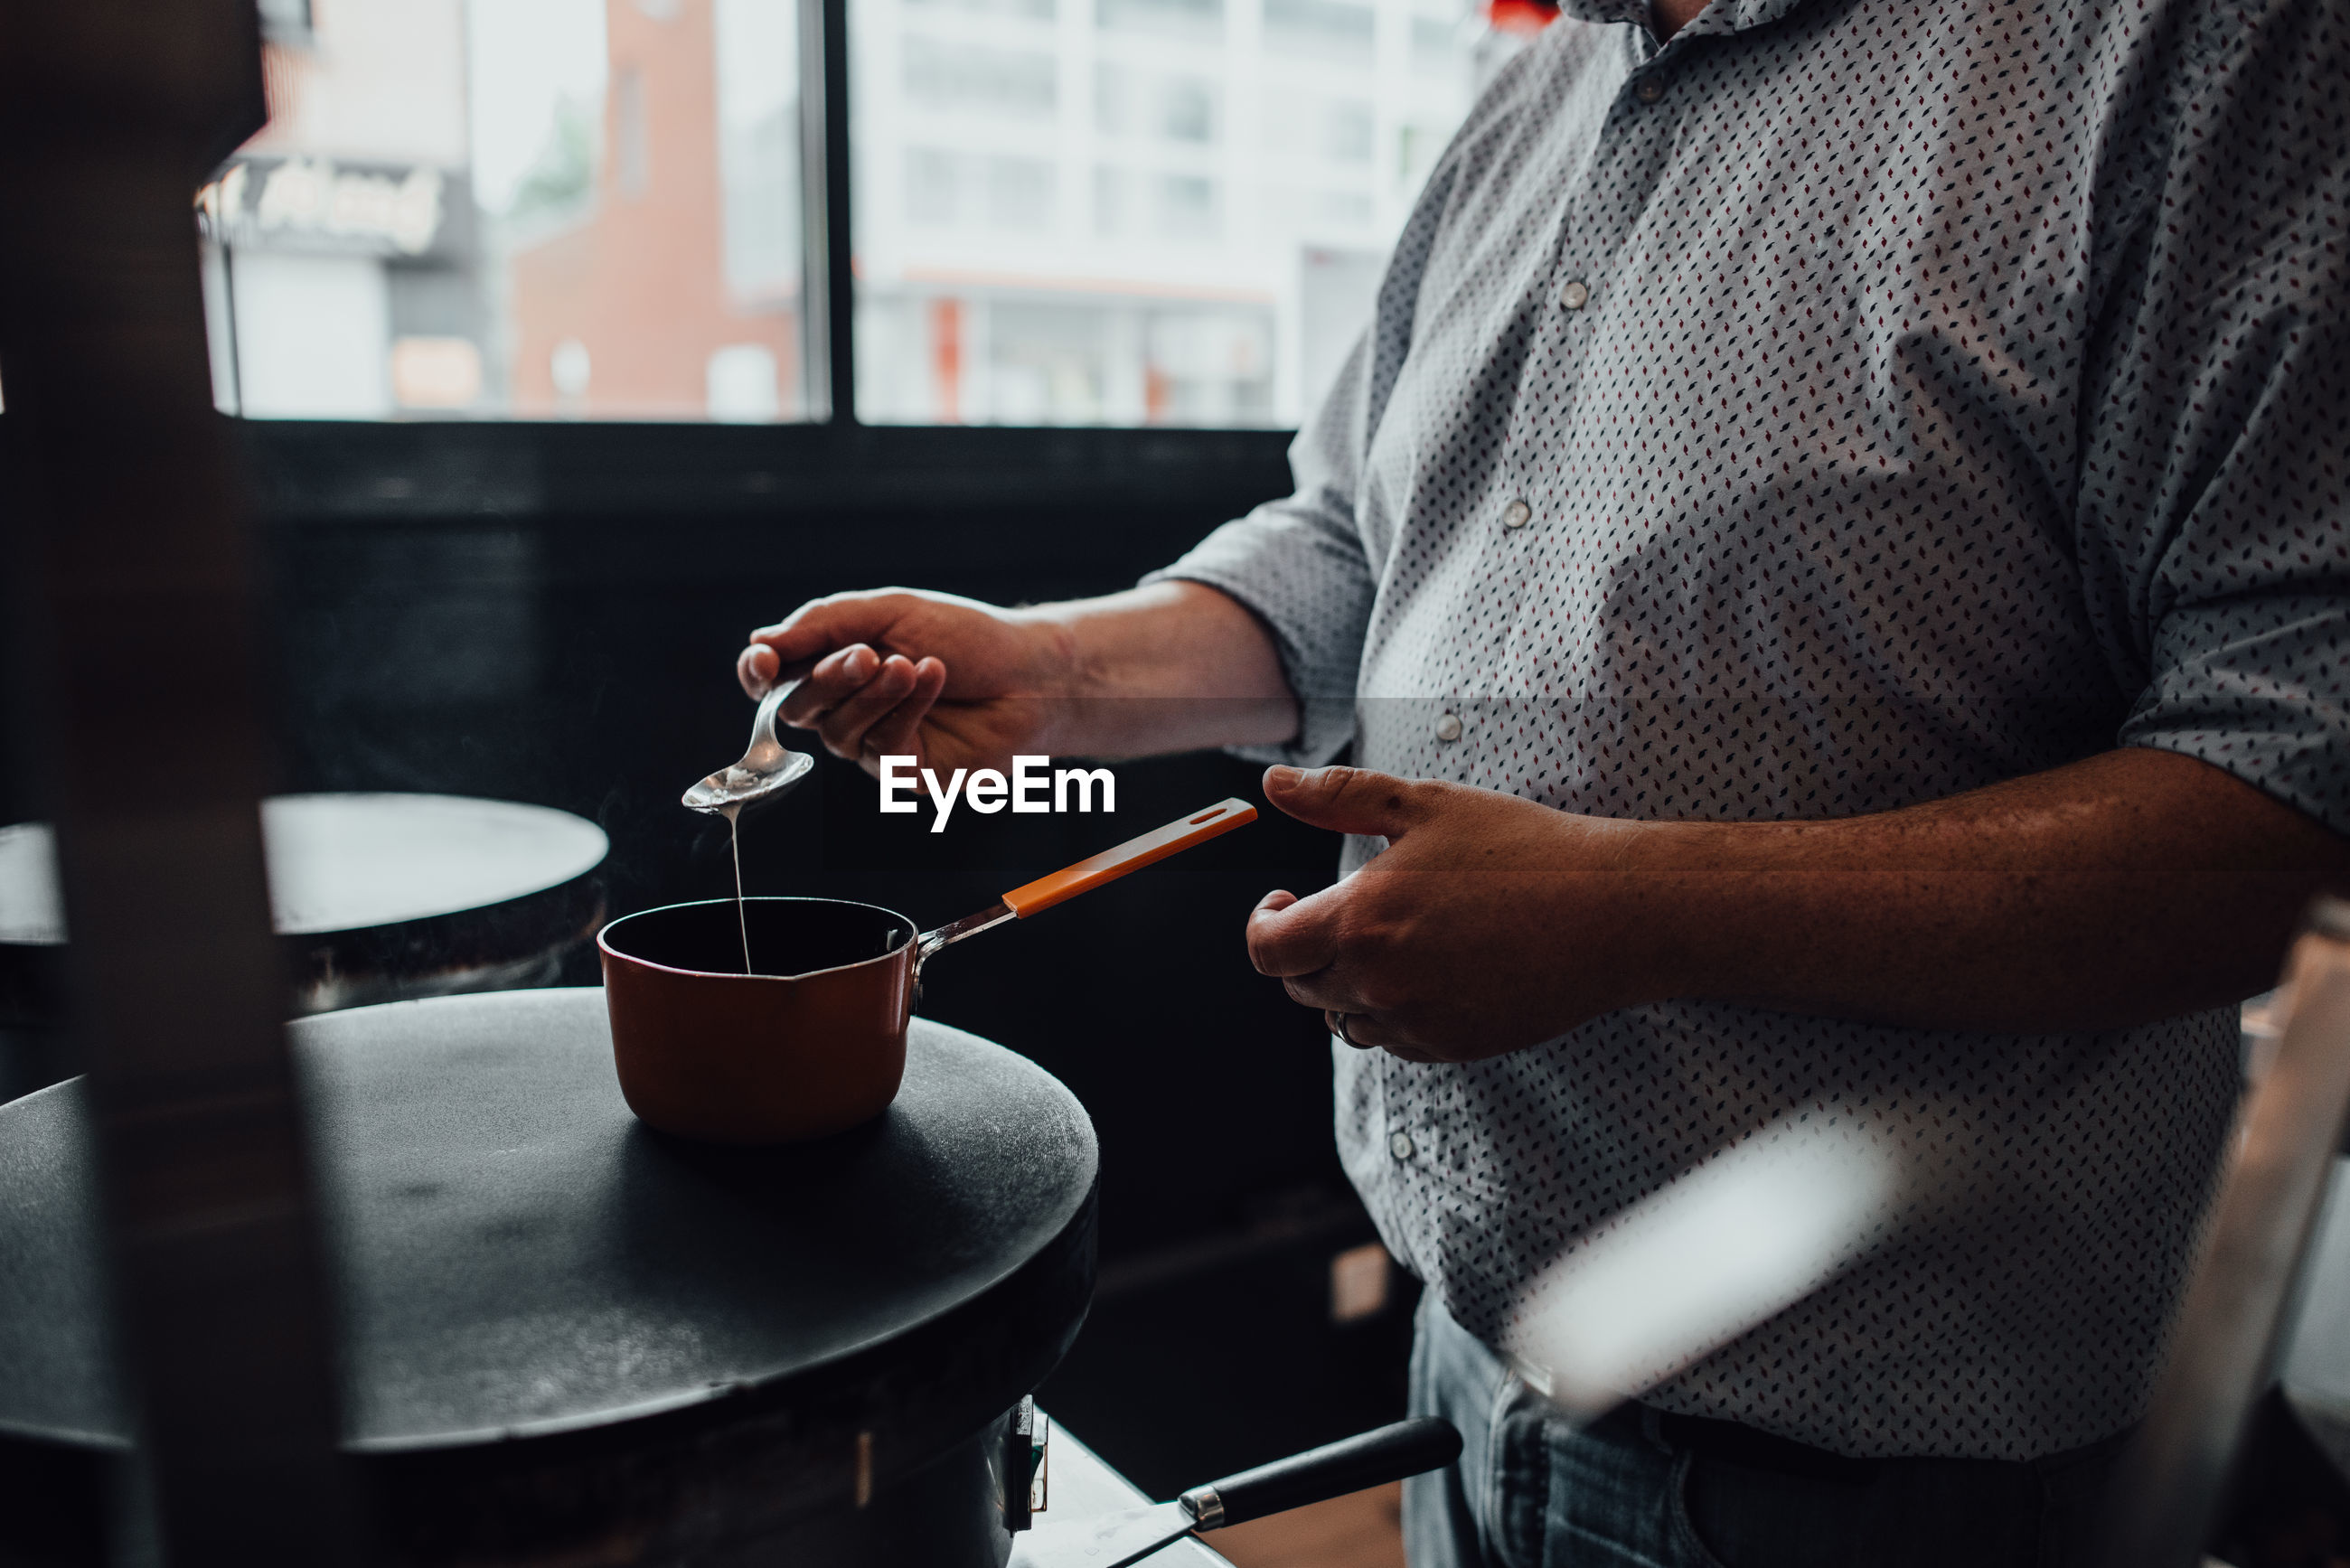 MIDSECTION OF MAN HOLDING COFFEE WHILE STANDING AT KITCHEN